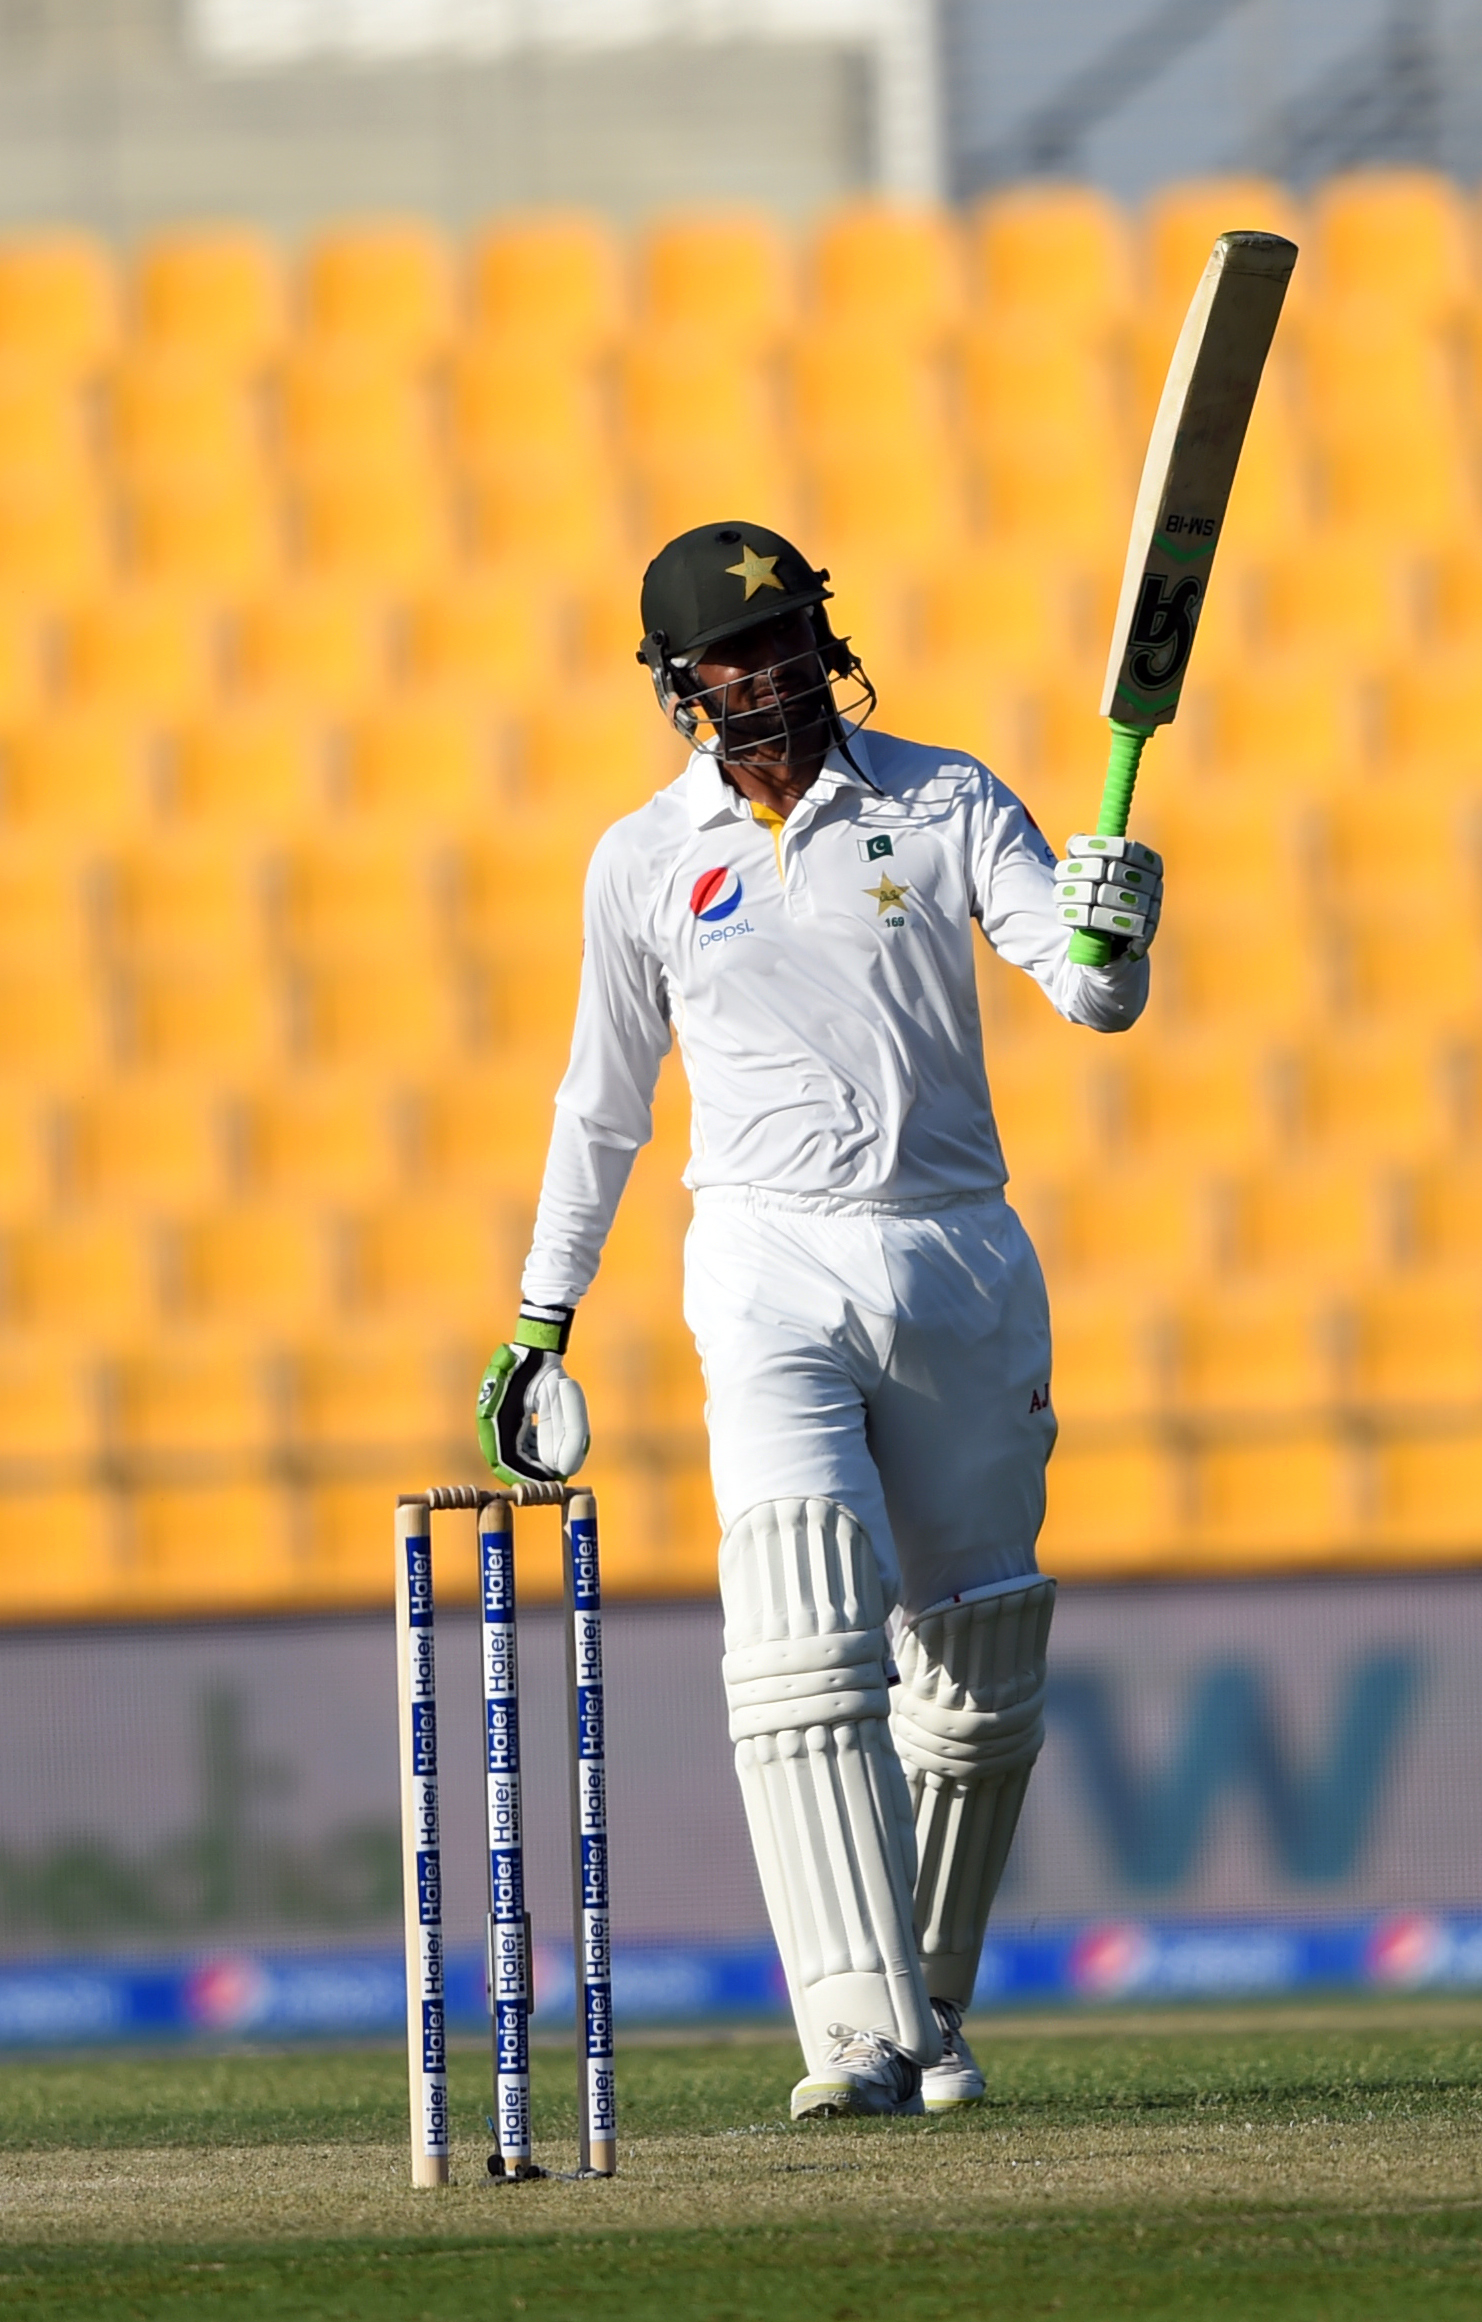 Pakistan batsman Shoaib Malik celebrates his century against England during first day of first test match at Zayed Cricket Stadium in Abu Dhabi, United Arab Emirates, Tuesday, Oct. 13, 2015. (AP Photo/Hafsal Ahmed)